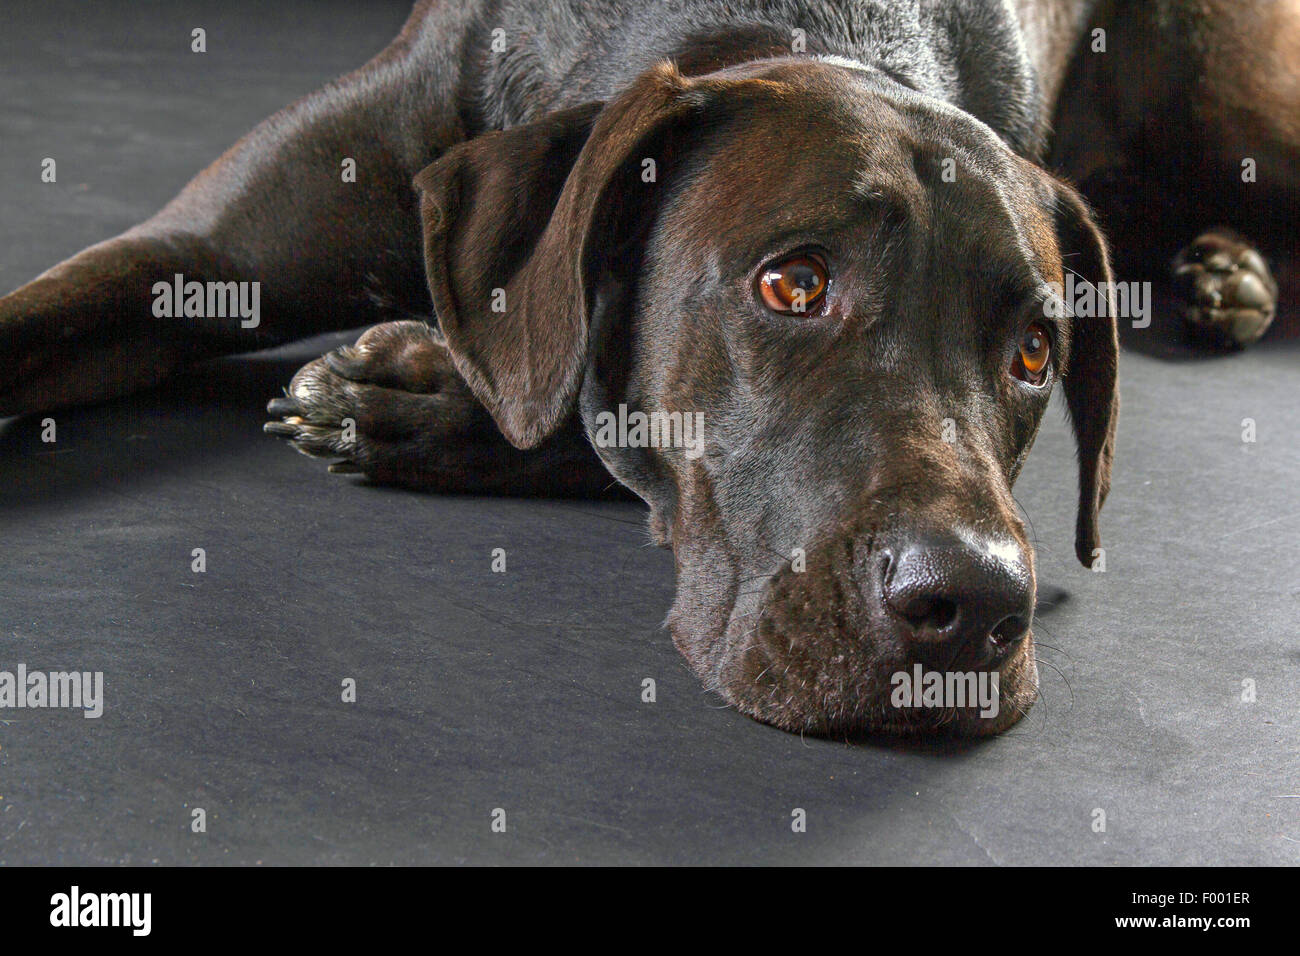 Labrador Retriever (Canis lupus f. familiaris), black-haired Labrador Retriever lyingon the floor, portrait - Stock Image